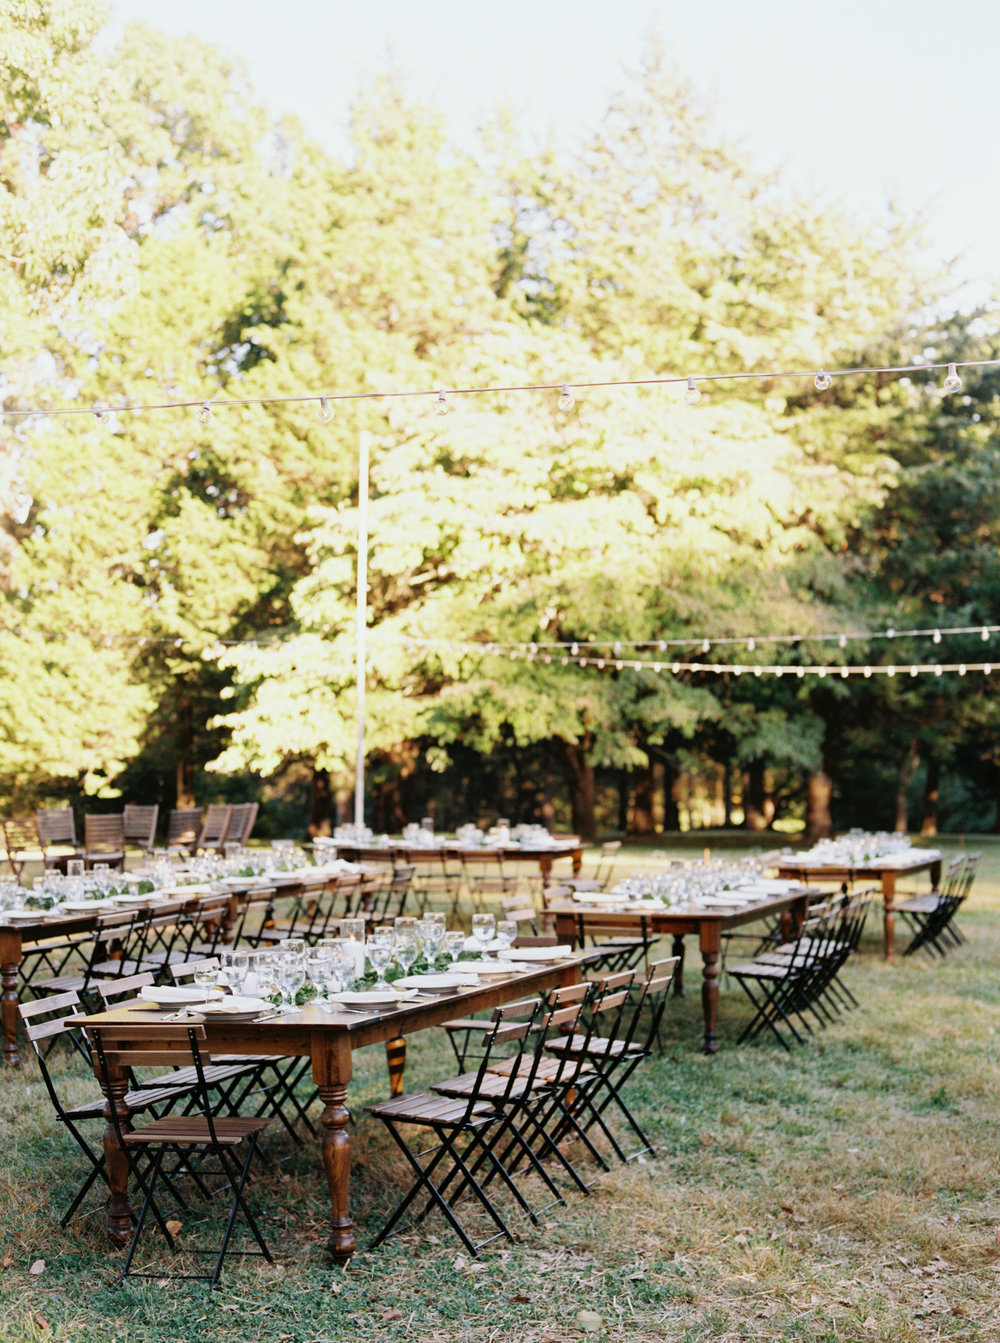 Fall Bloomsbury Farm Wedding - Nashville, TN - Farm Tables